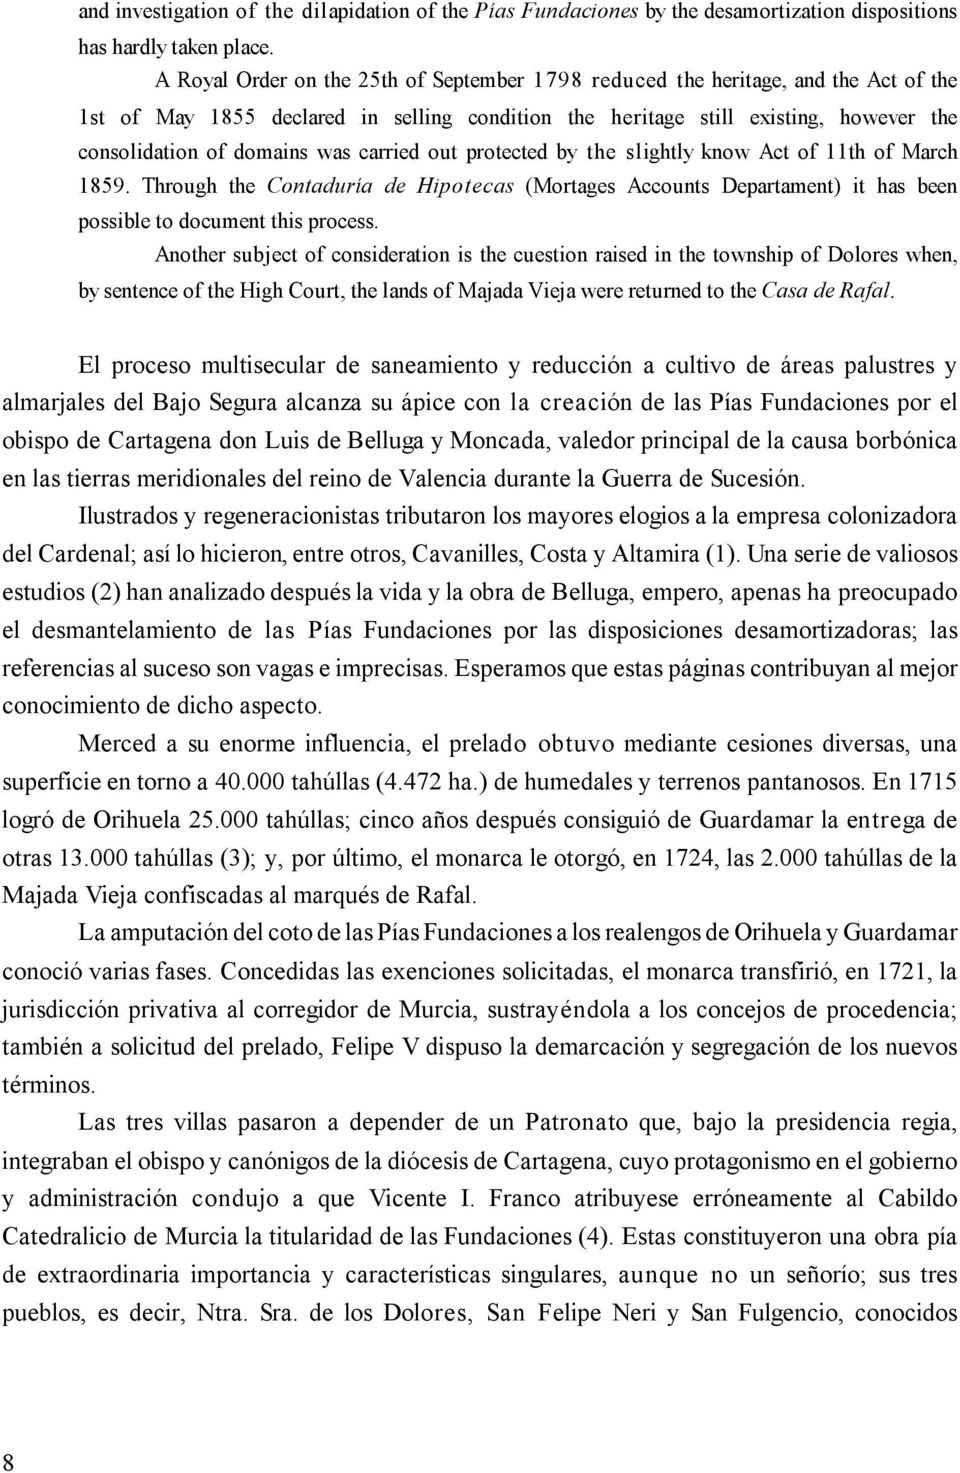 was carried out protected by the slightly know Act of 11th of March 1859. Through the Contaduría de Hipotecas (Mortages Accounts Departament) it has been possible to document this process.